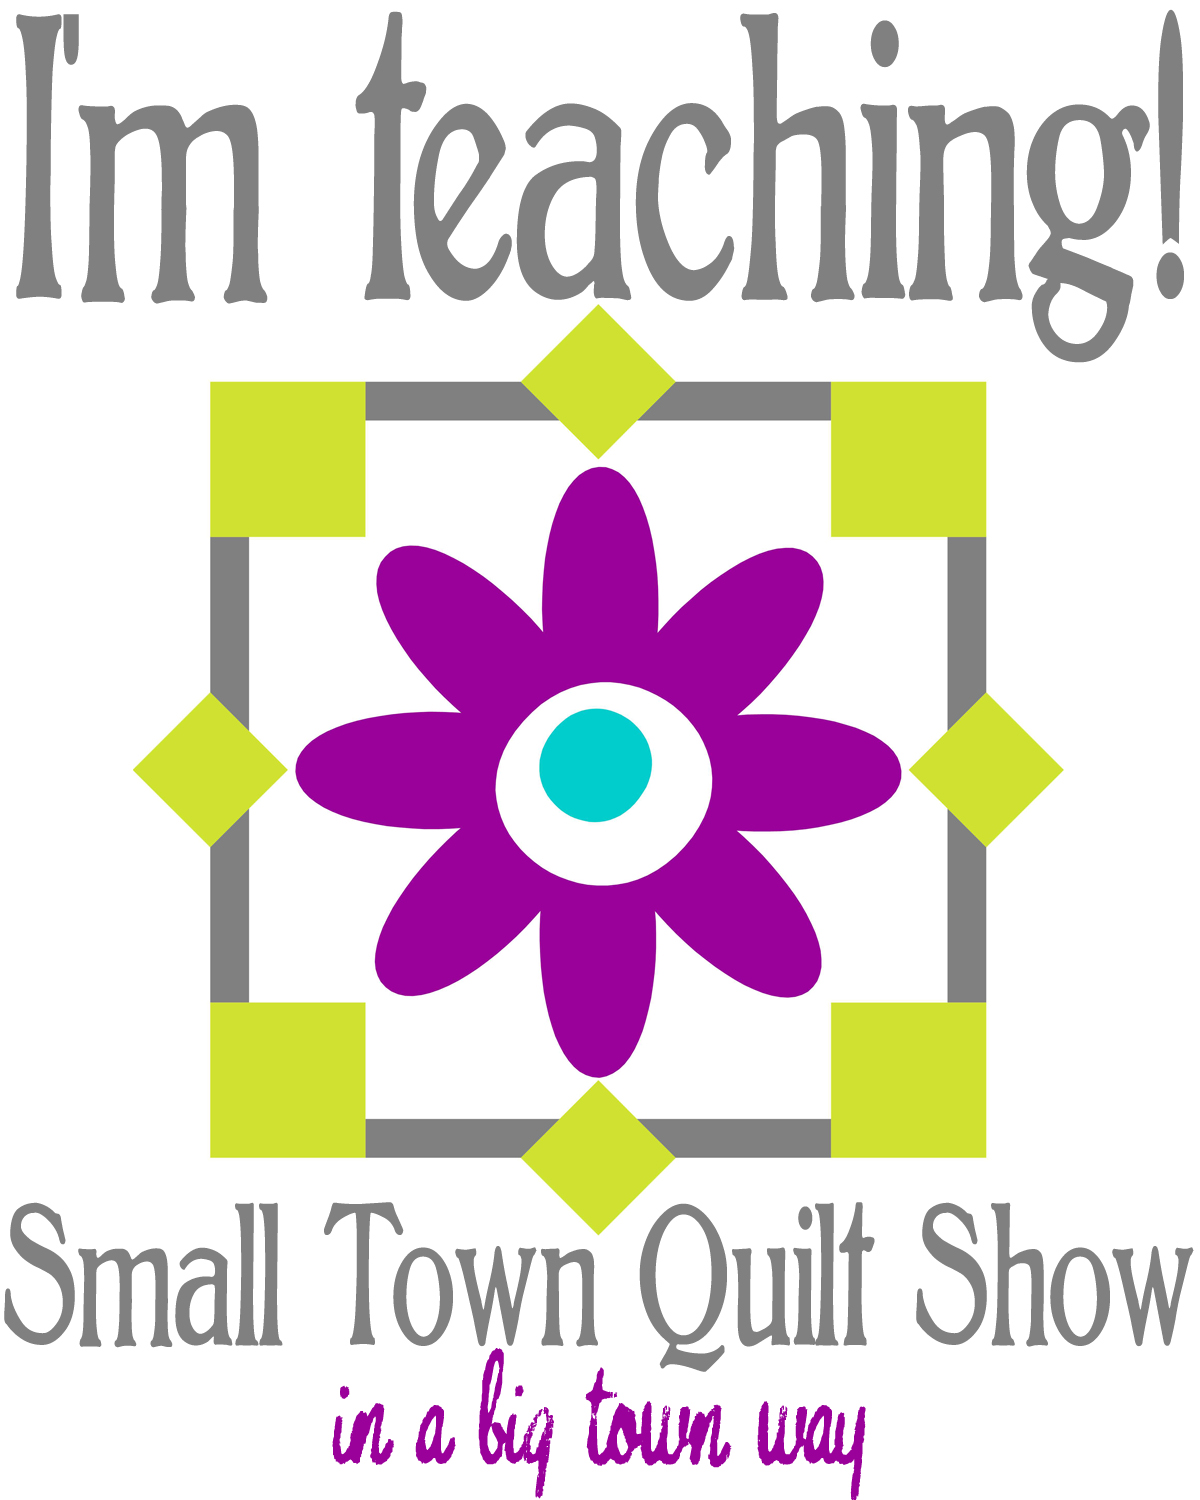 im teaching small town quilt show logo - AmysCreativeSide.com